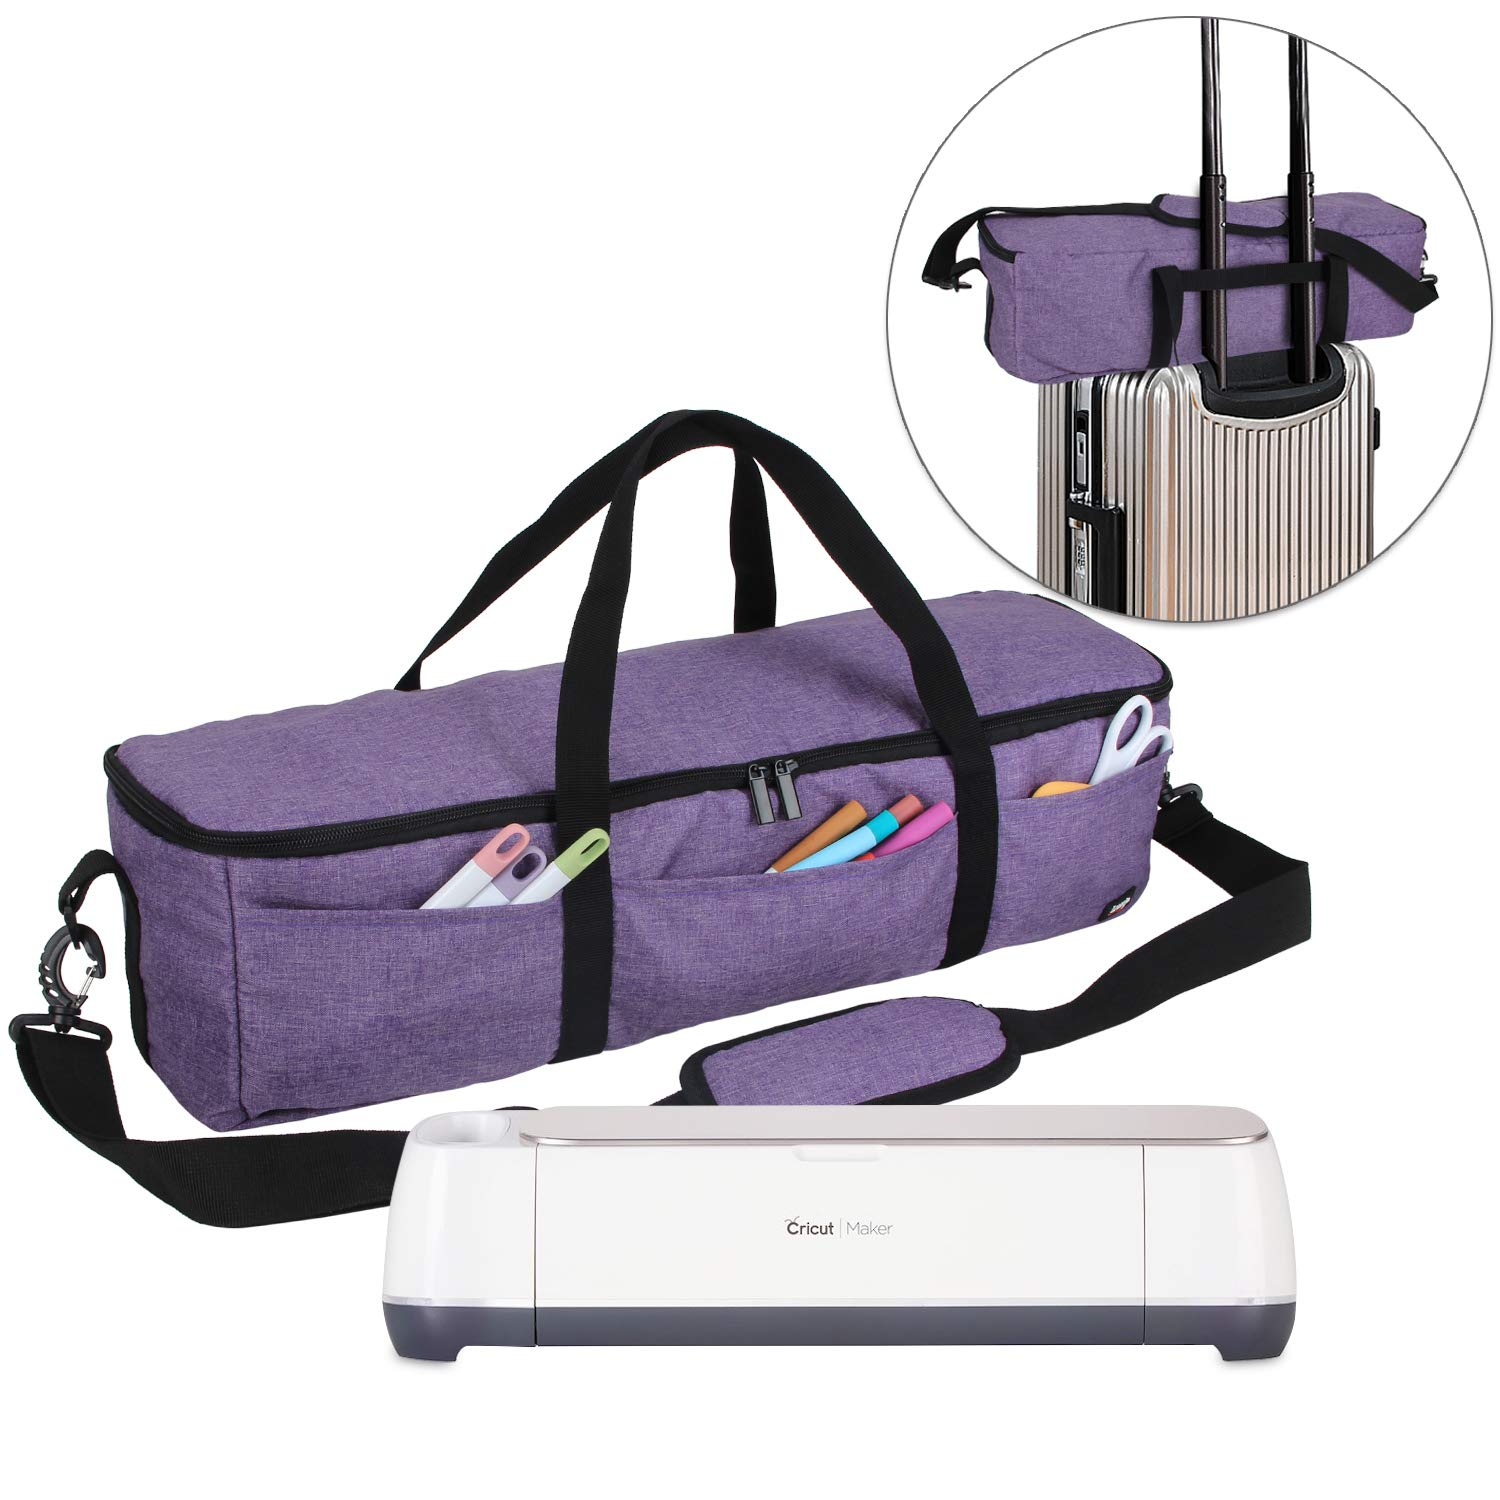 Luxja Foldable Bag Compatible with Cricut Explore Air and Maker, Carrying Bag Compatible with Cricut Explore Air and Supplies (Bag Only), Purple